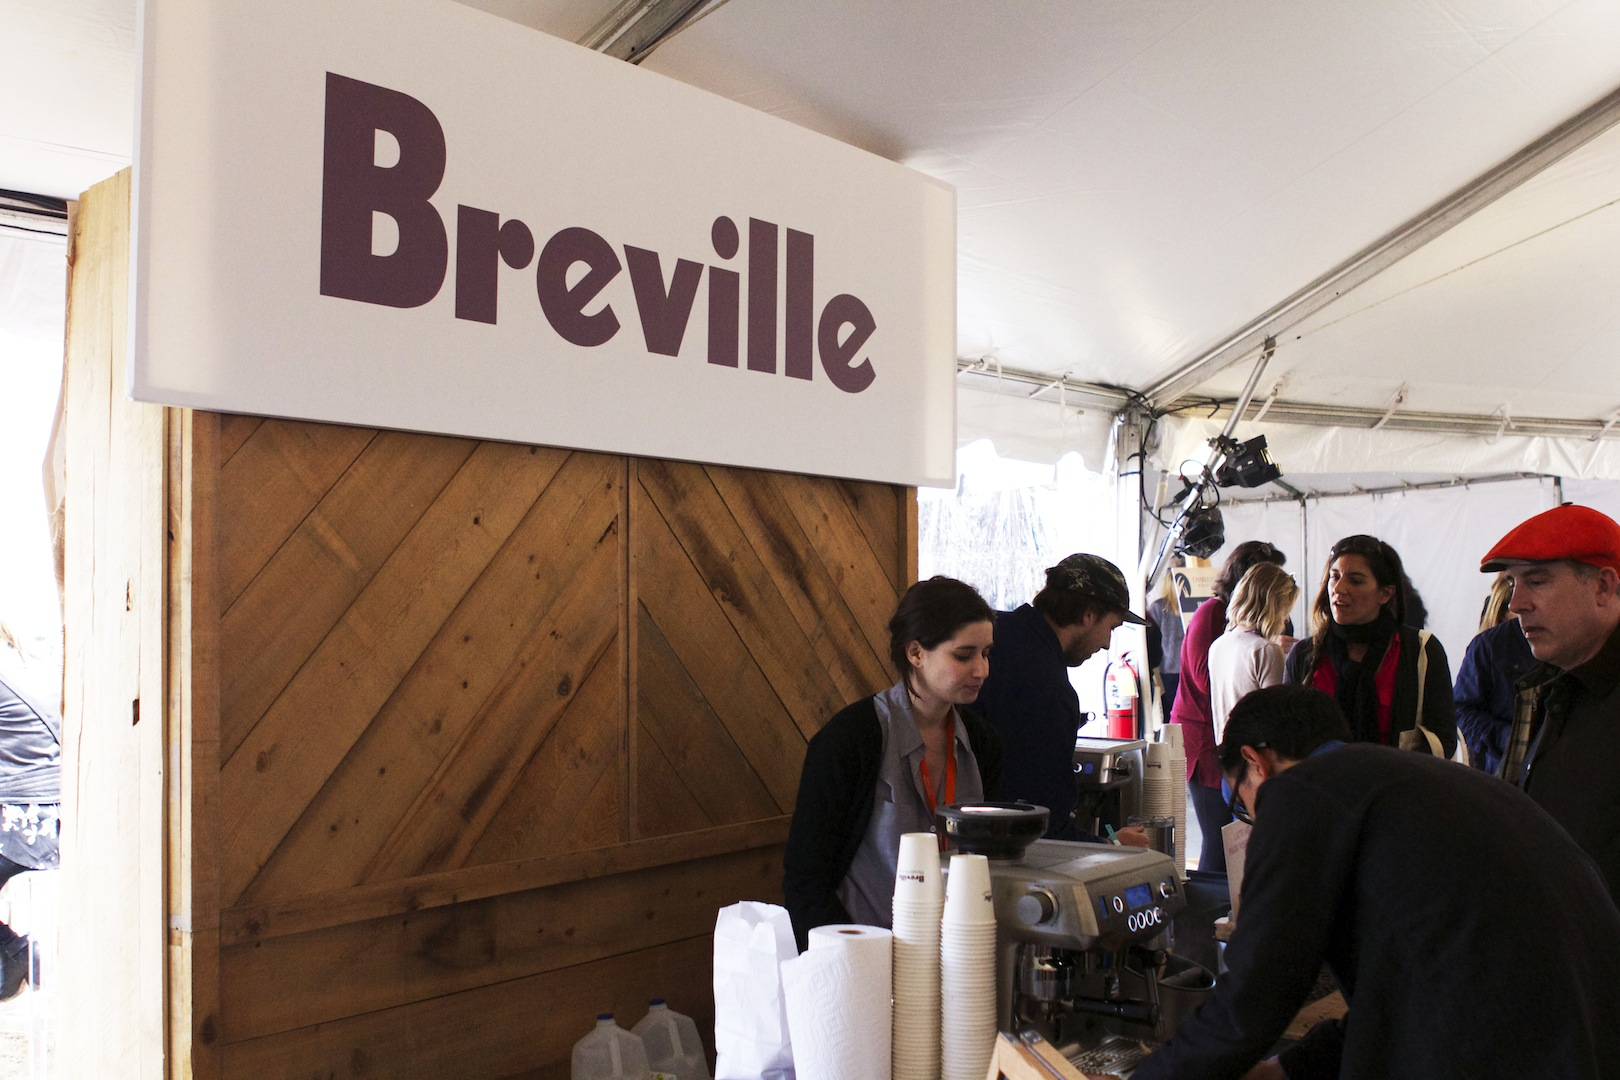 Our friends at Breville and South Carolina's Collective Coffee Company slang amazing, rosetta'd lattes. Like the one in our Instagram video.